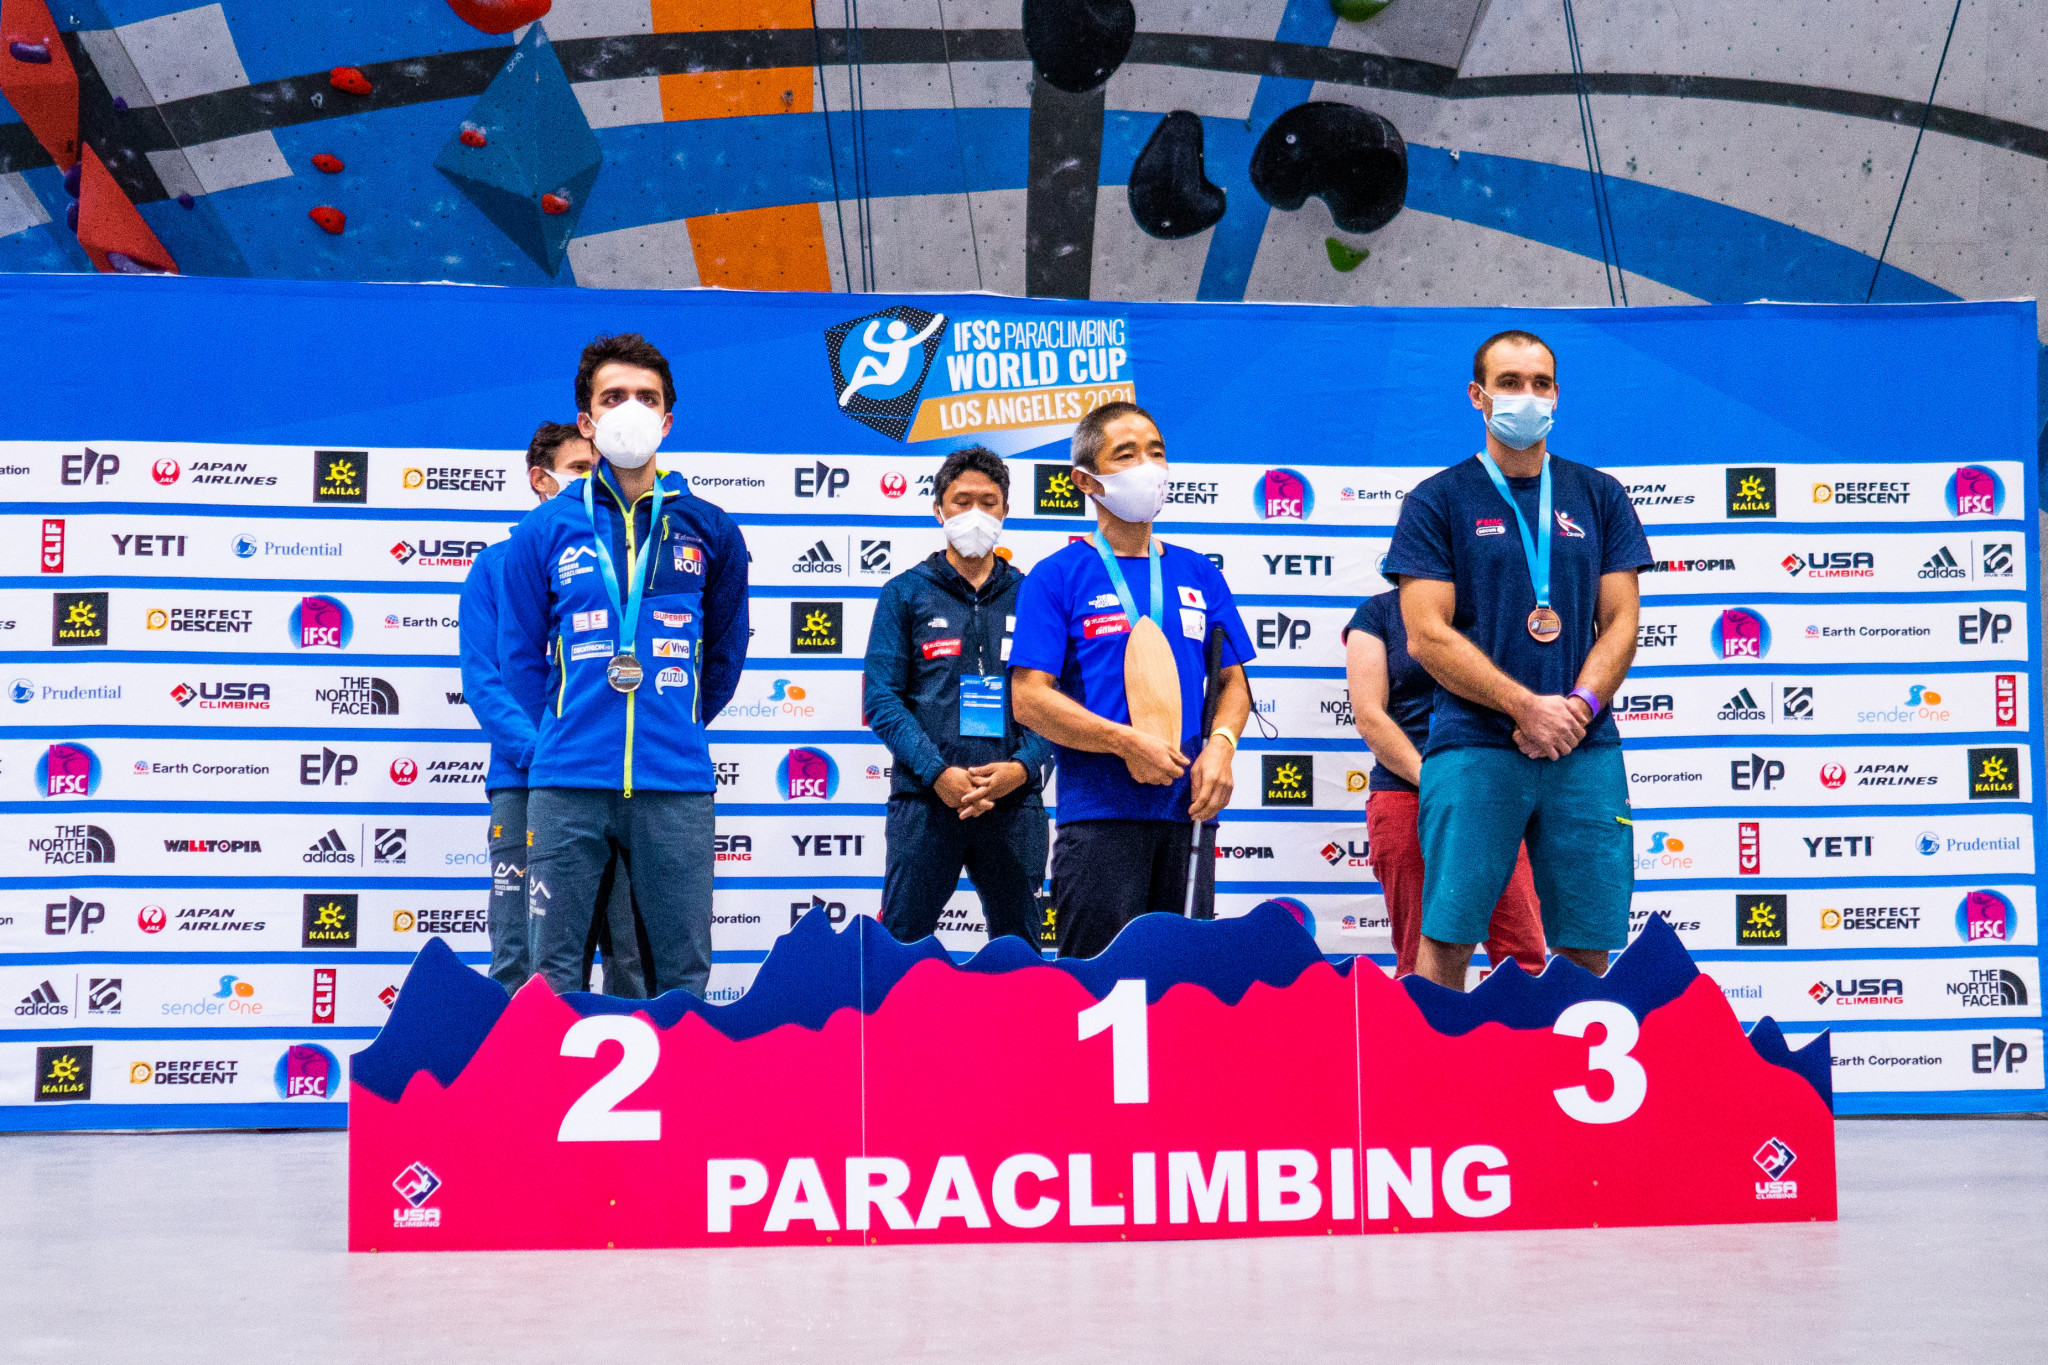 Kobayashi Koichiro, centre, won his first gold of the IFSC Paraclimbing World Cup season at the age of 53 in the men's B1 in Los Angeles ©Daniel Gajda/IFSC